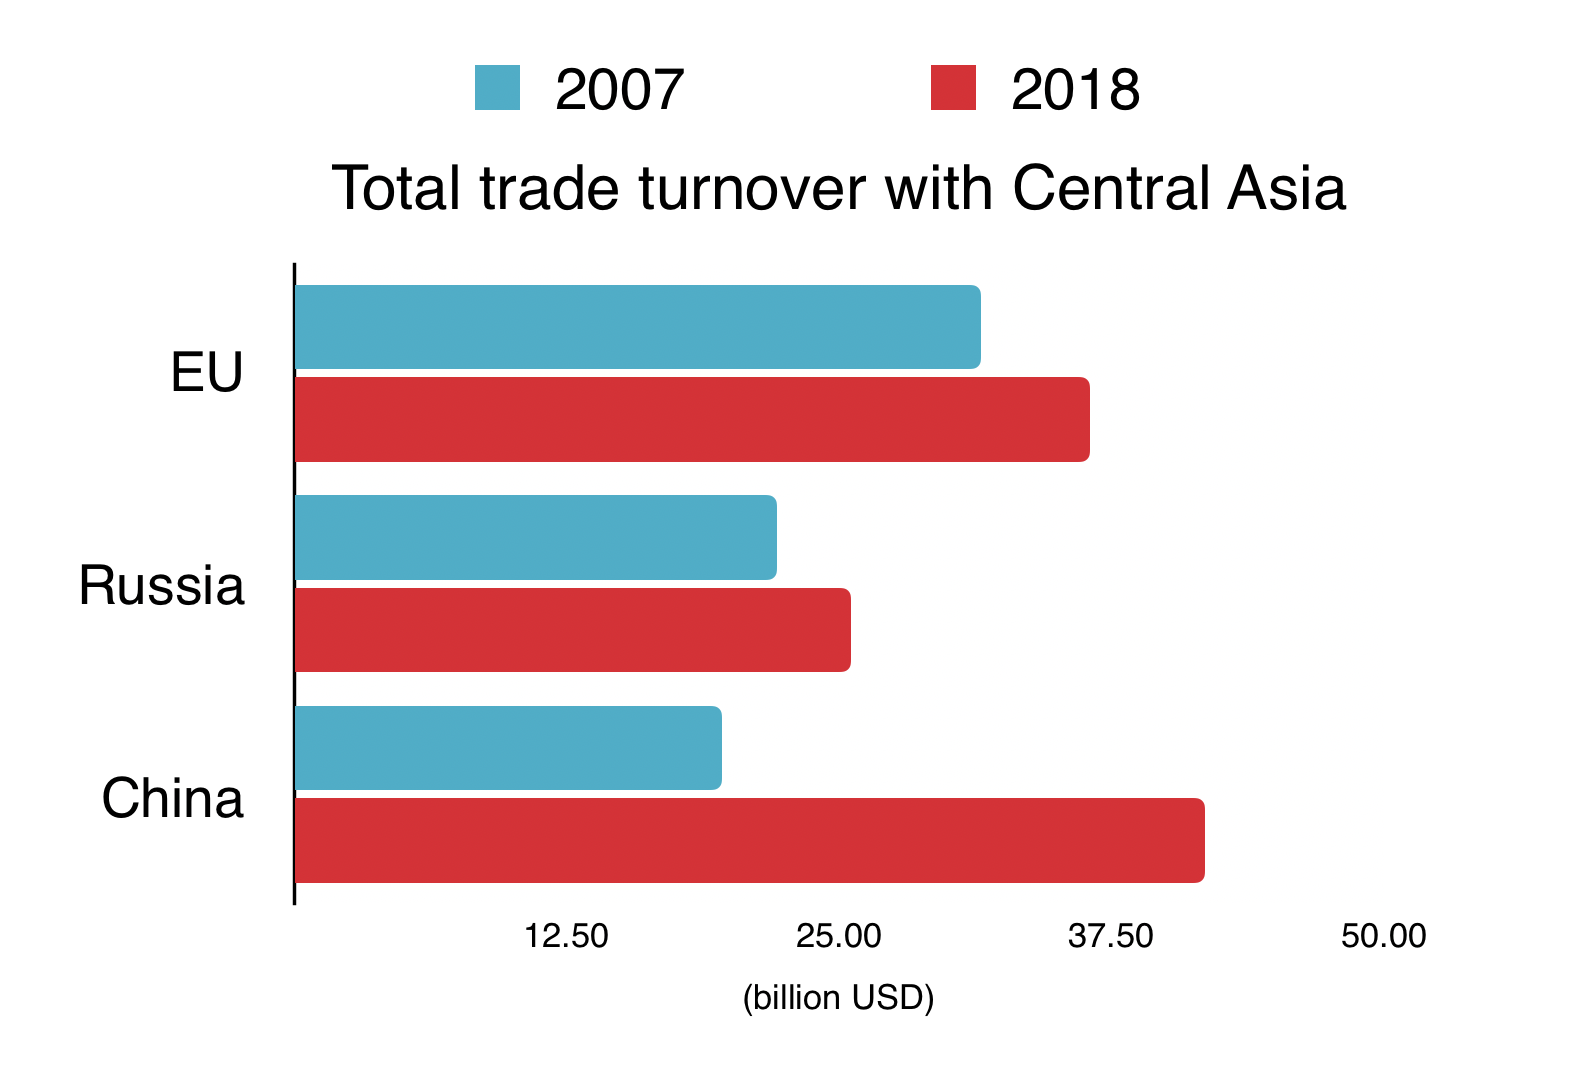 trade turnover with Central Asia